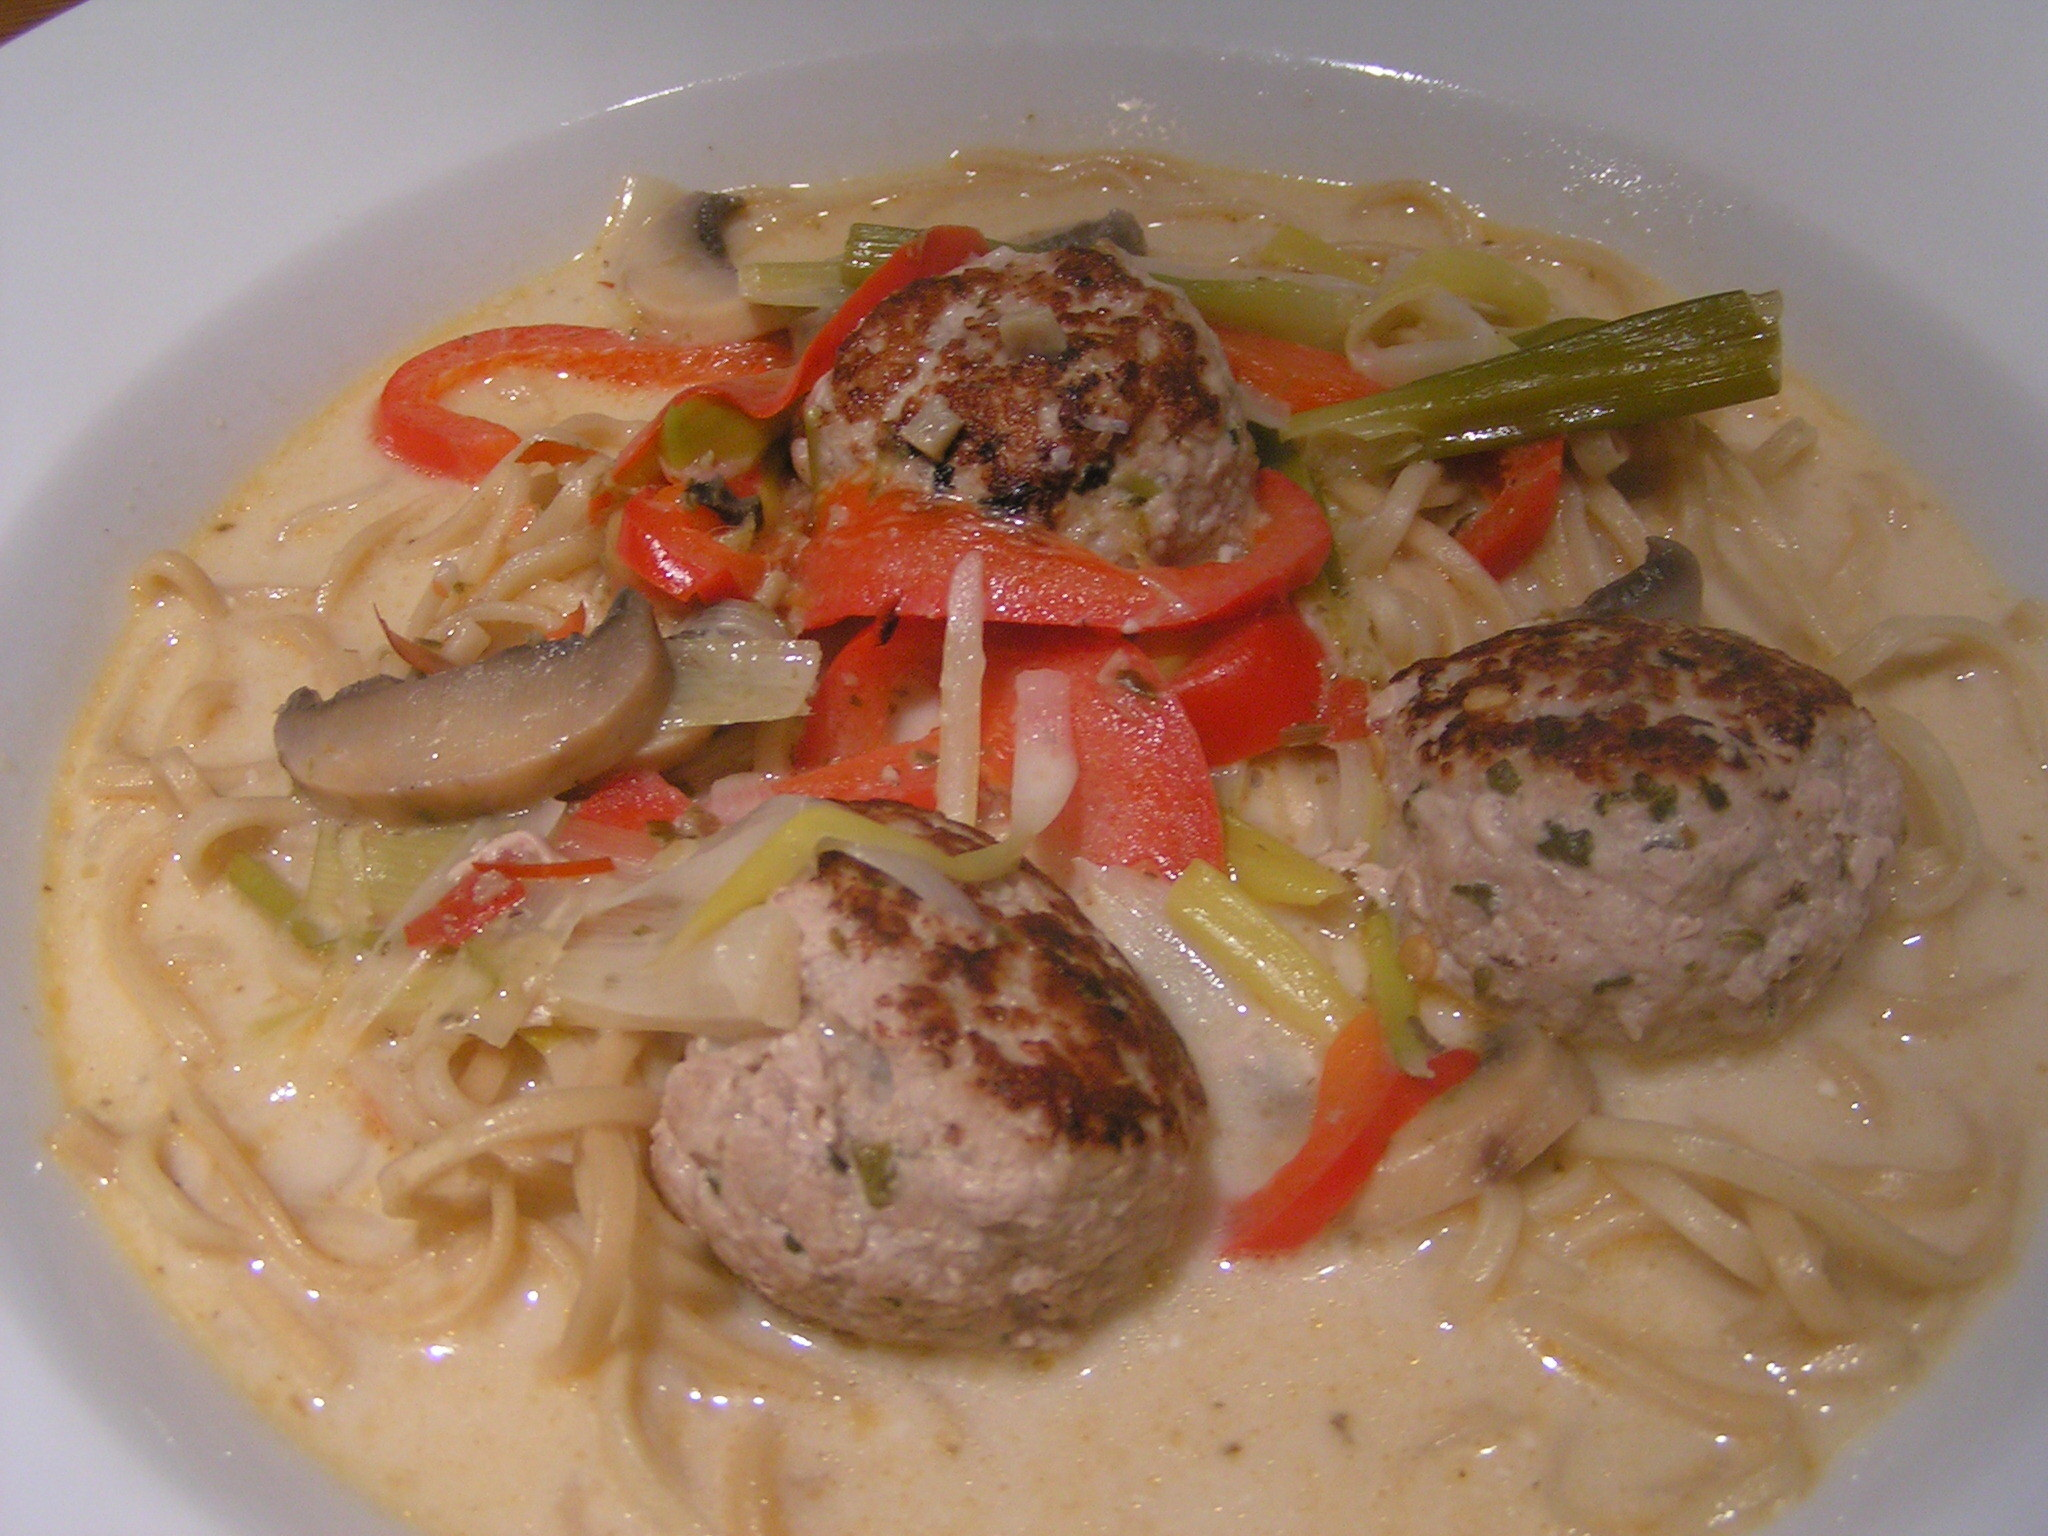 Thai noodle soup with pork patties